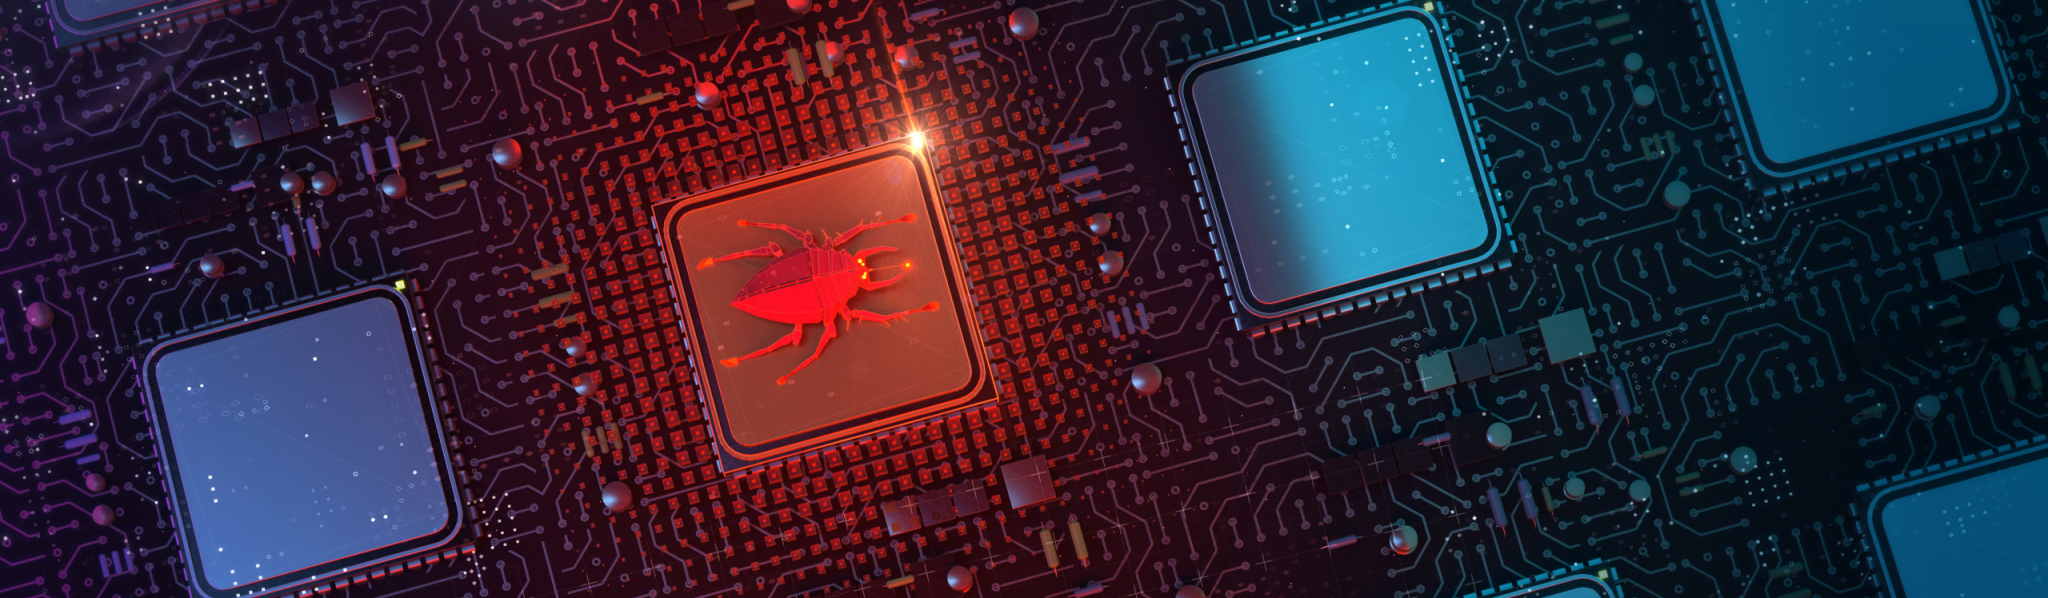 red glowing compiter bug on infected chip in cyberspace 3d redner. spyware, malware, virus trojan, keylogger, hacker attack illustration.